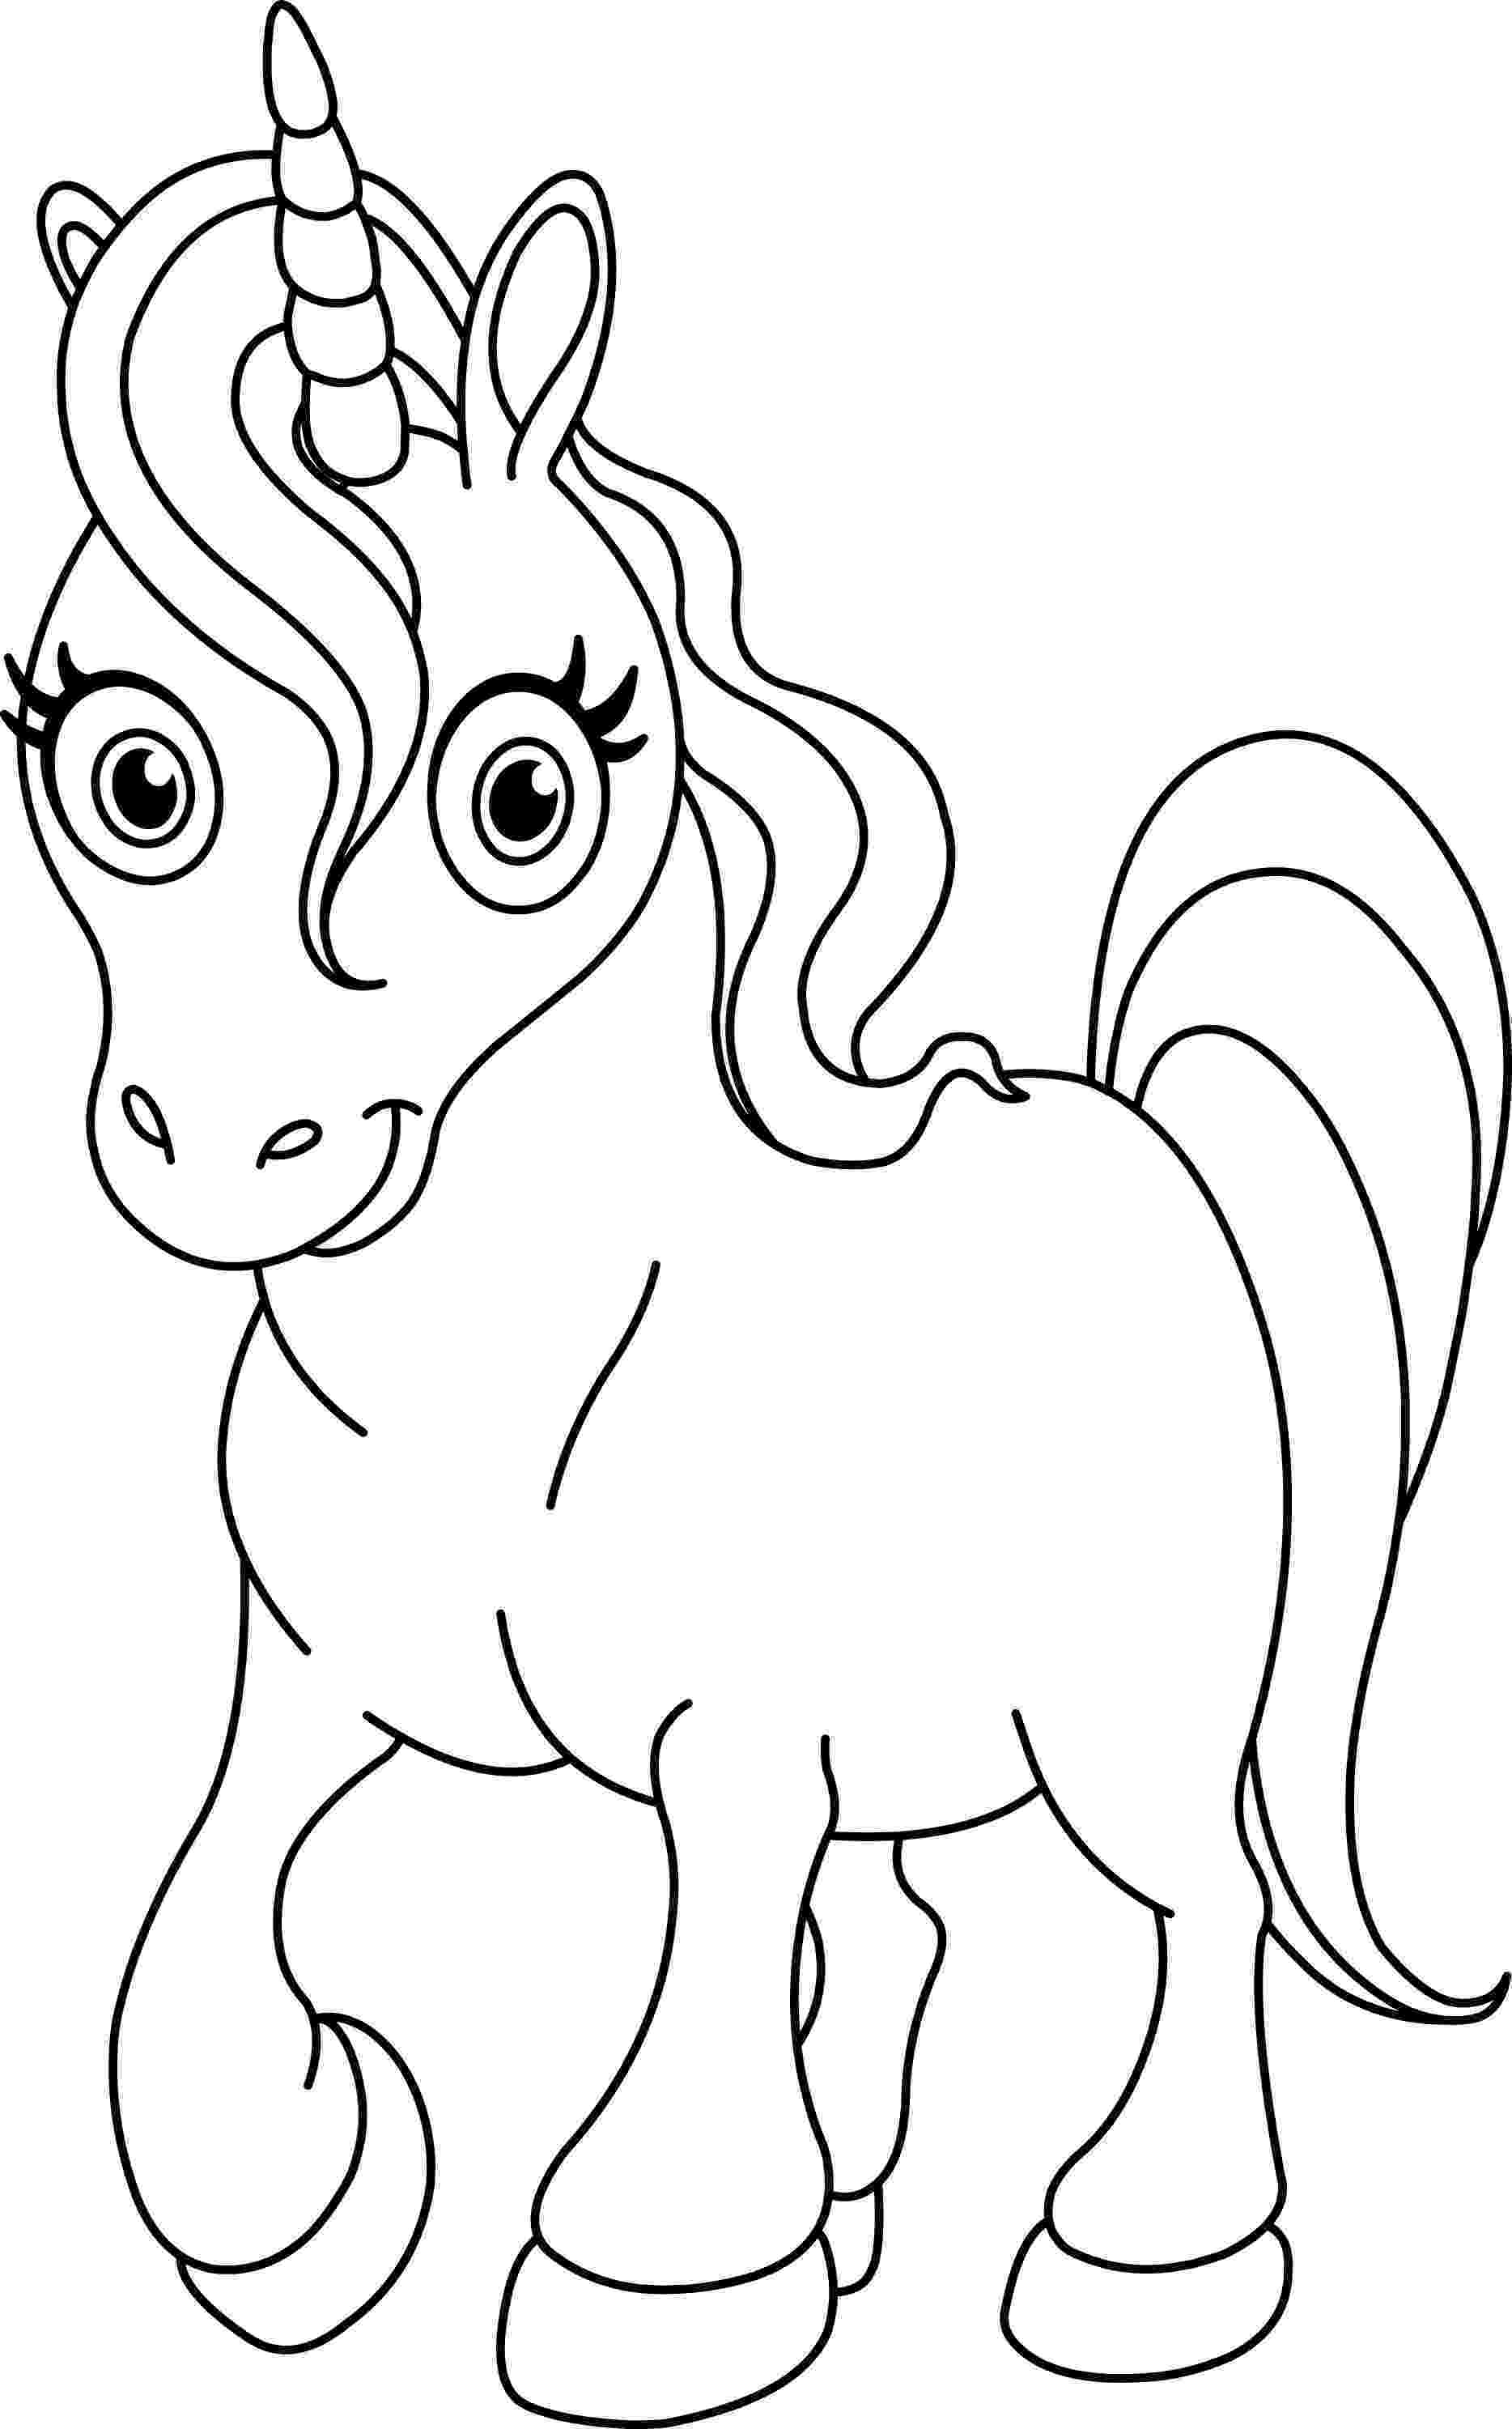 free coloring pages printable patrick coloring pages to download and print for free printable coloring pages free